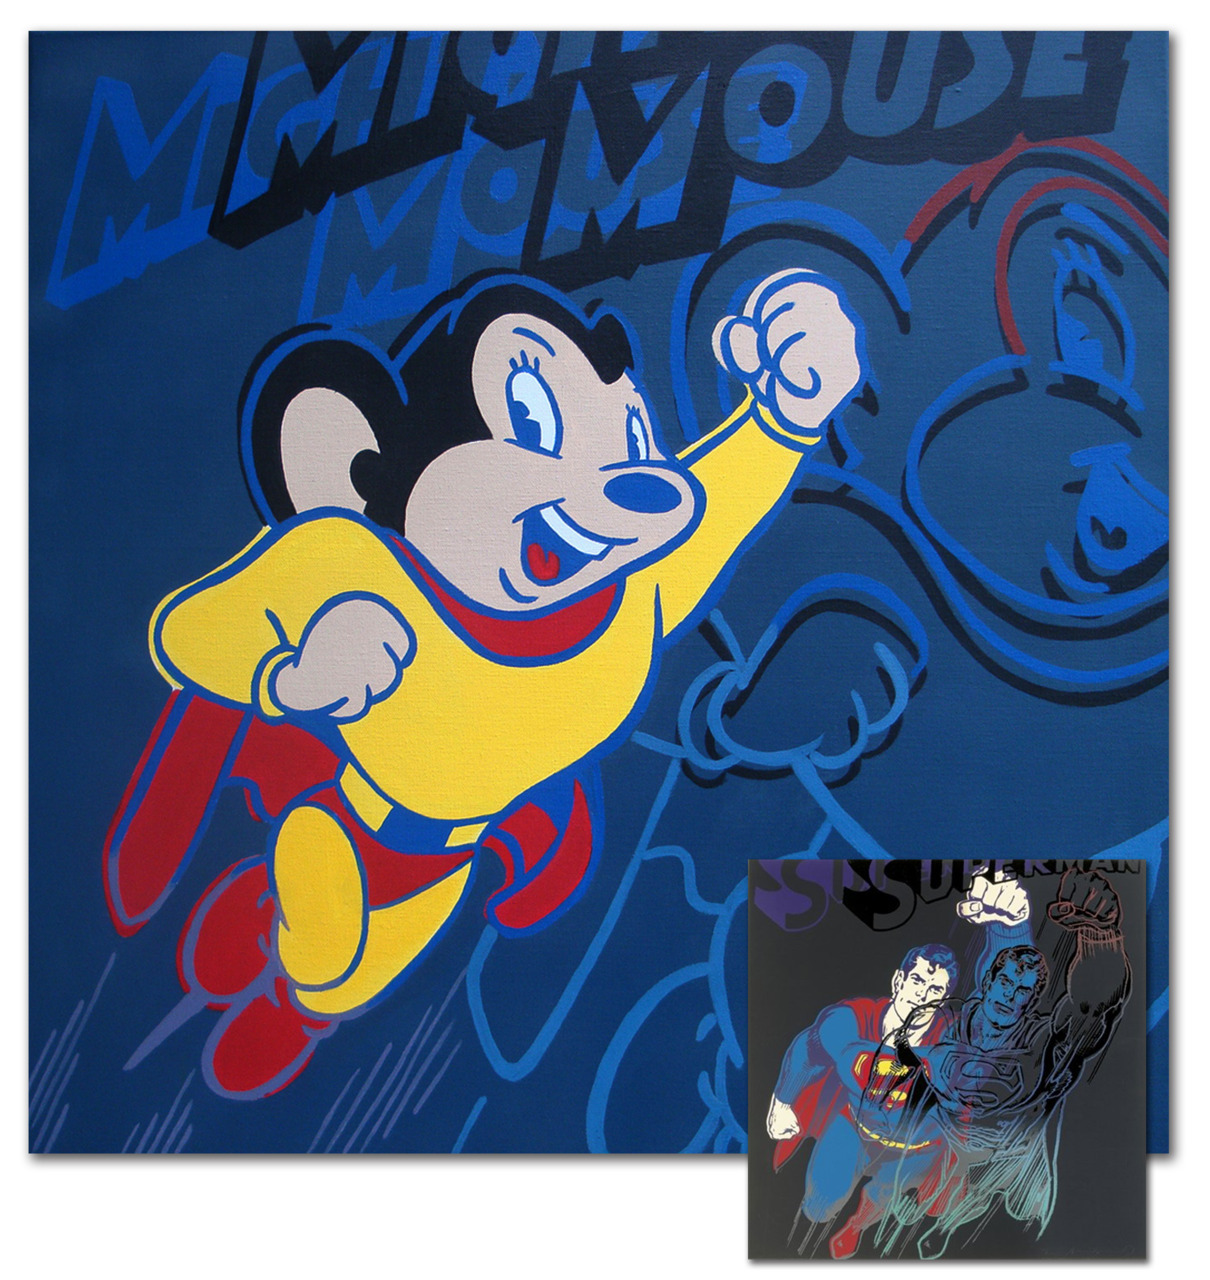 "MIGHTY MOUSE  ACRYLIC ON CANVAS  An 18"" X 18"""" Canvas Painting  Its been said that Mighty Mouse was a take on Superman. Here, I took Andy Warhol's Superman and applied it to Mighty Mouse. Half the size of Warhol's original, of course.  Inset is Warhol's Superman.  Part of STOREFRONT ARTIST PROJECT, SATURDAY MORNINGS August 6 thru September 4, 2011"